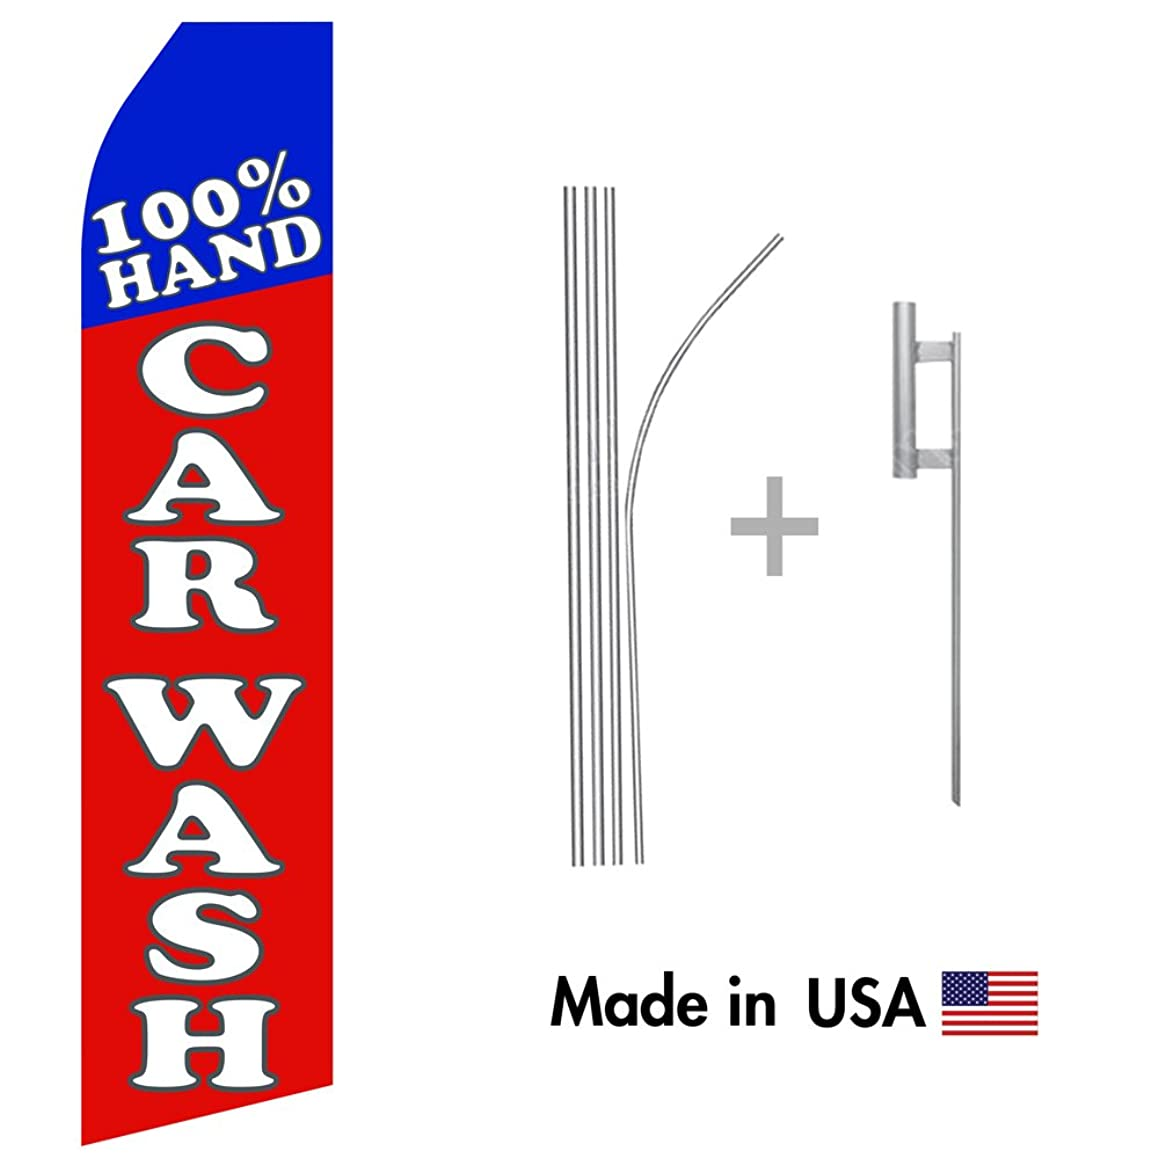 wall26 100% Hand Car Wash Econo Flag | 16ft Aluminum Advertising Swooper Flag Kit with Hardware